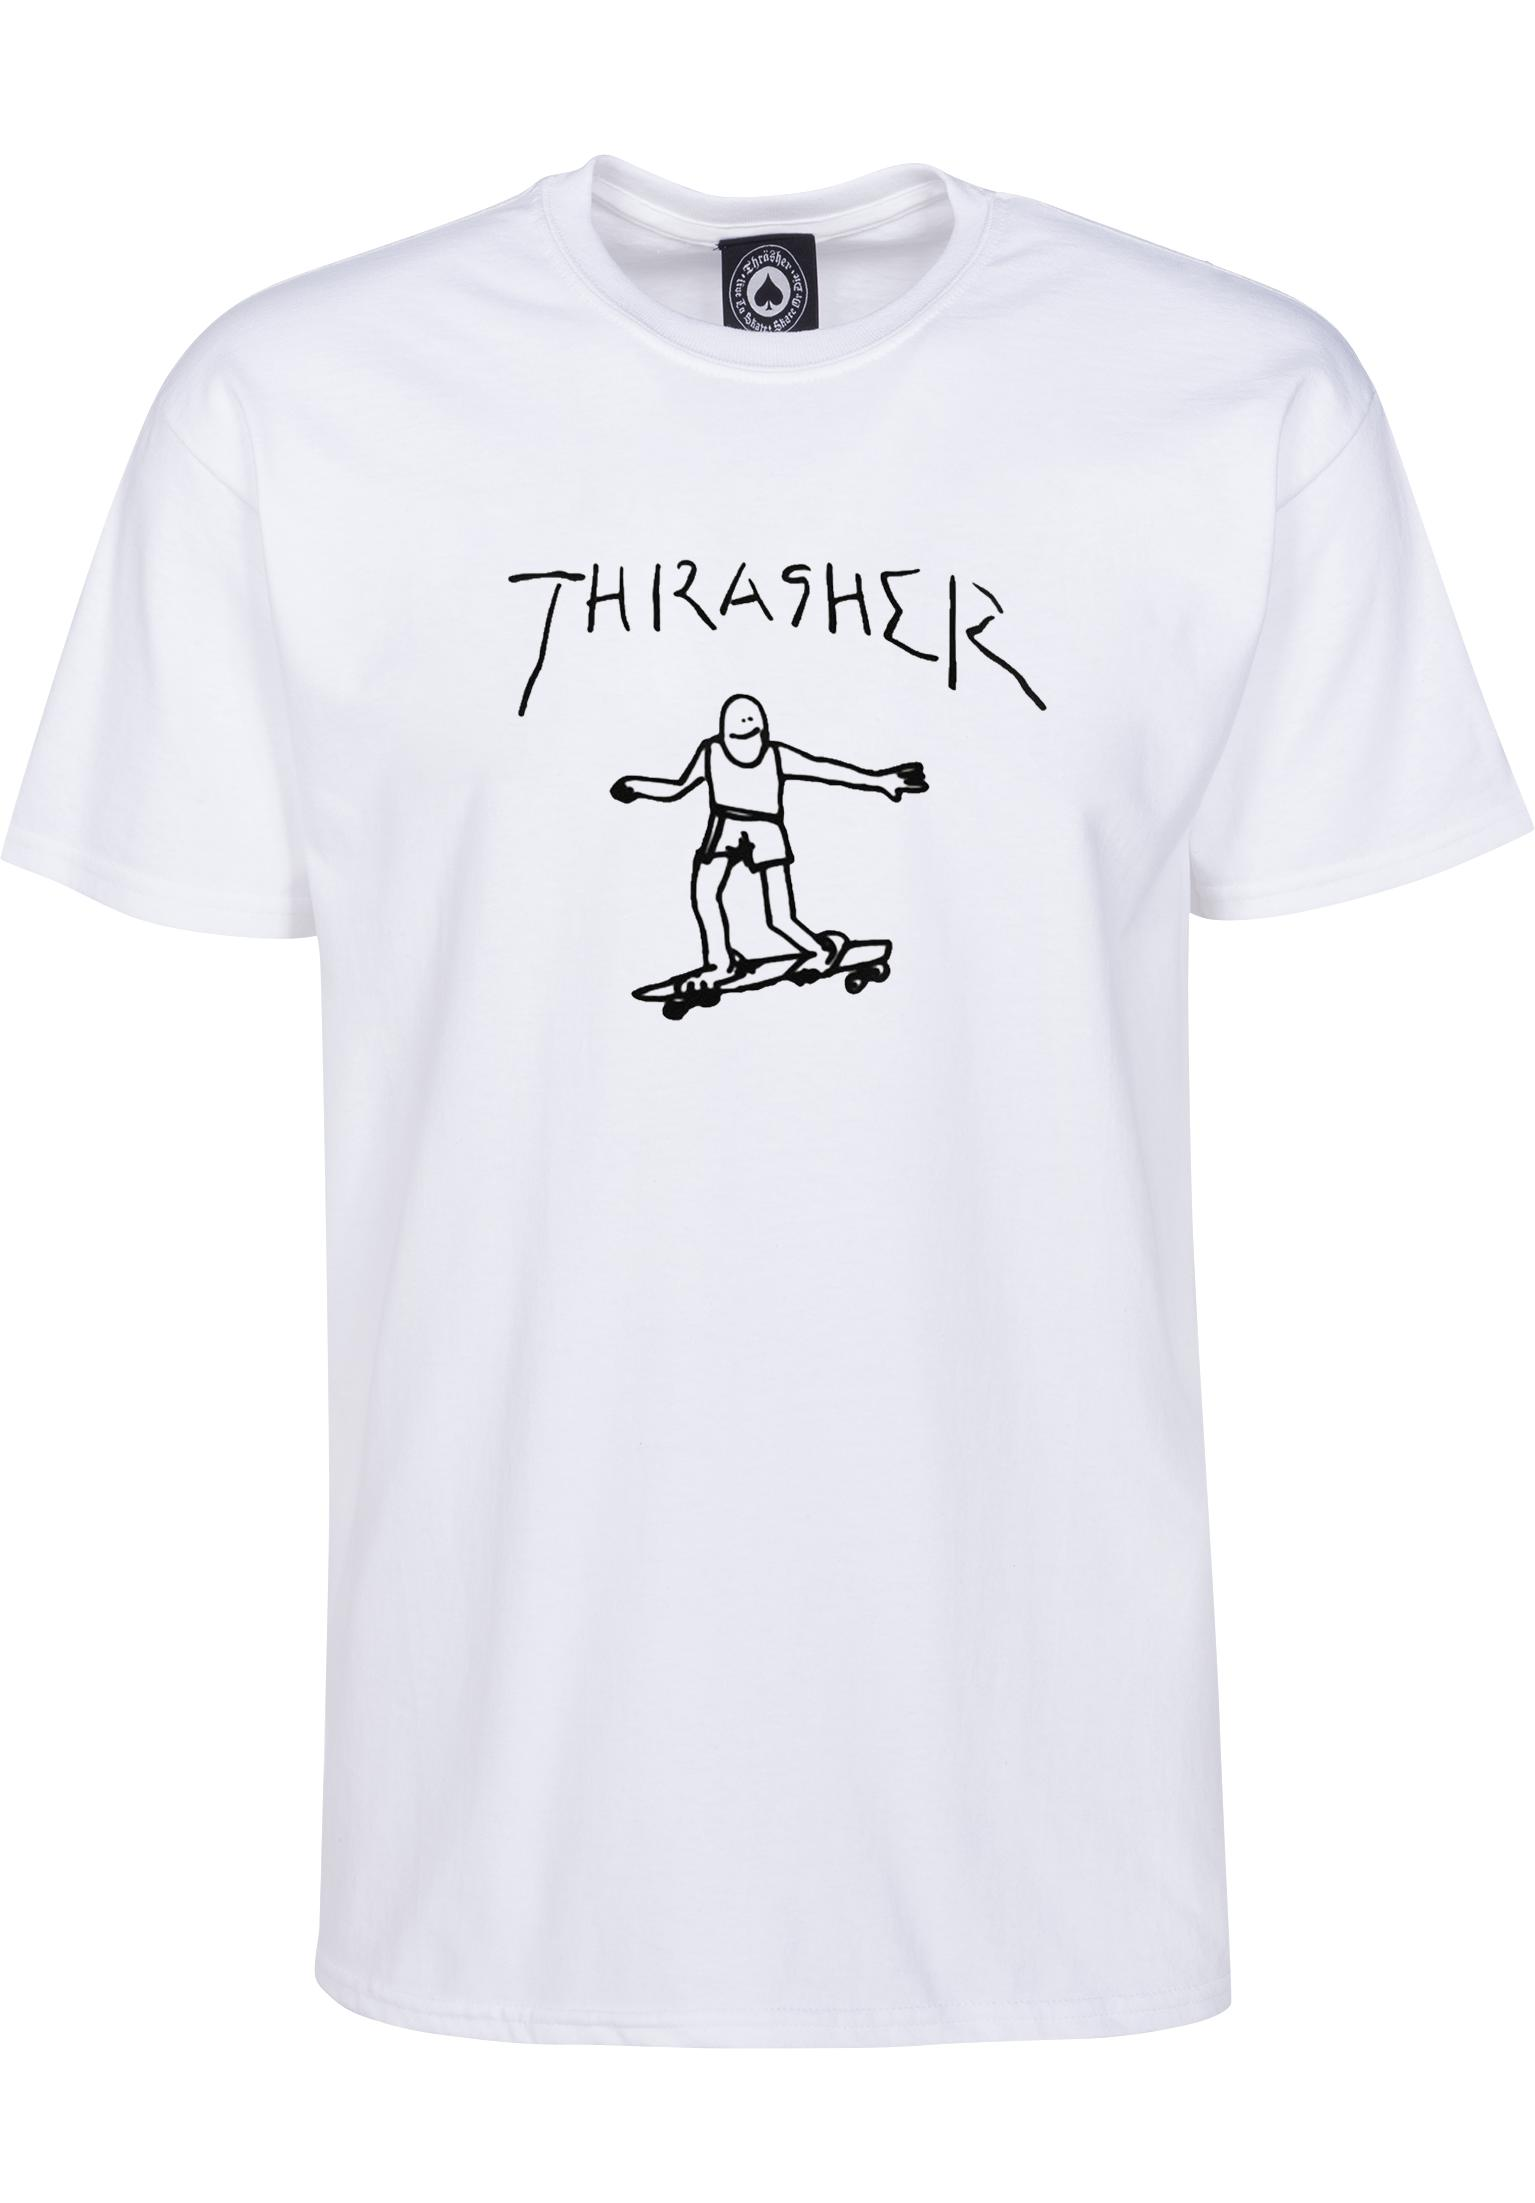 c44f7114ef86 Gonz Thrasher T-shirt in white da Uomo